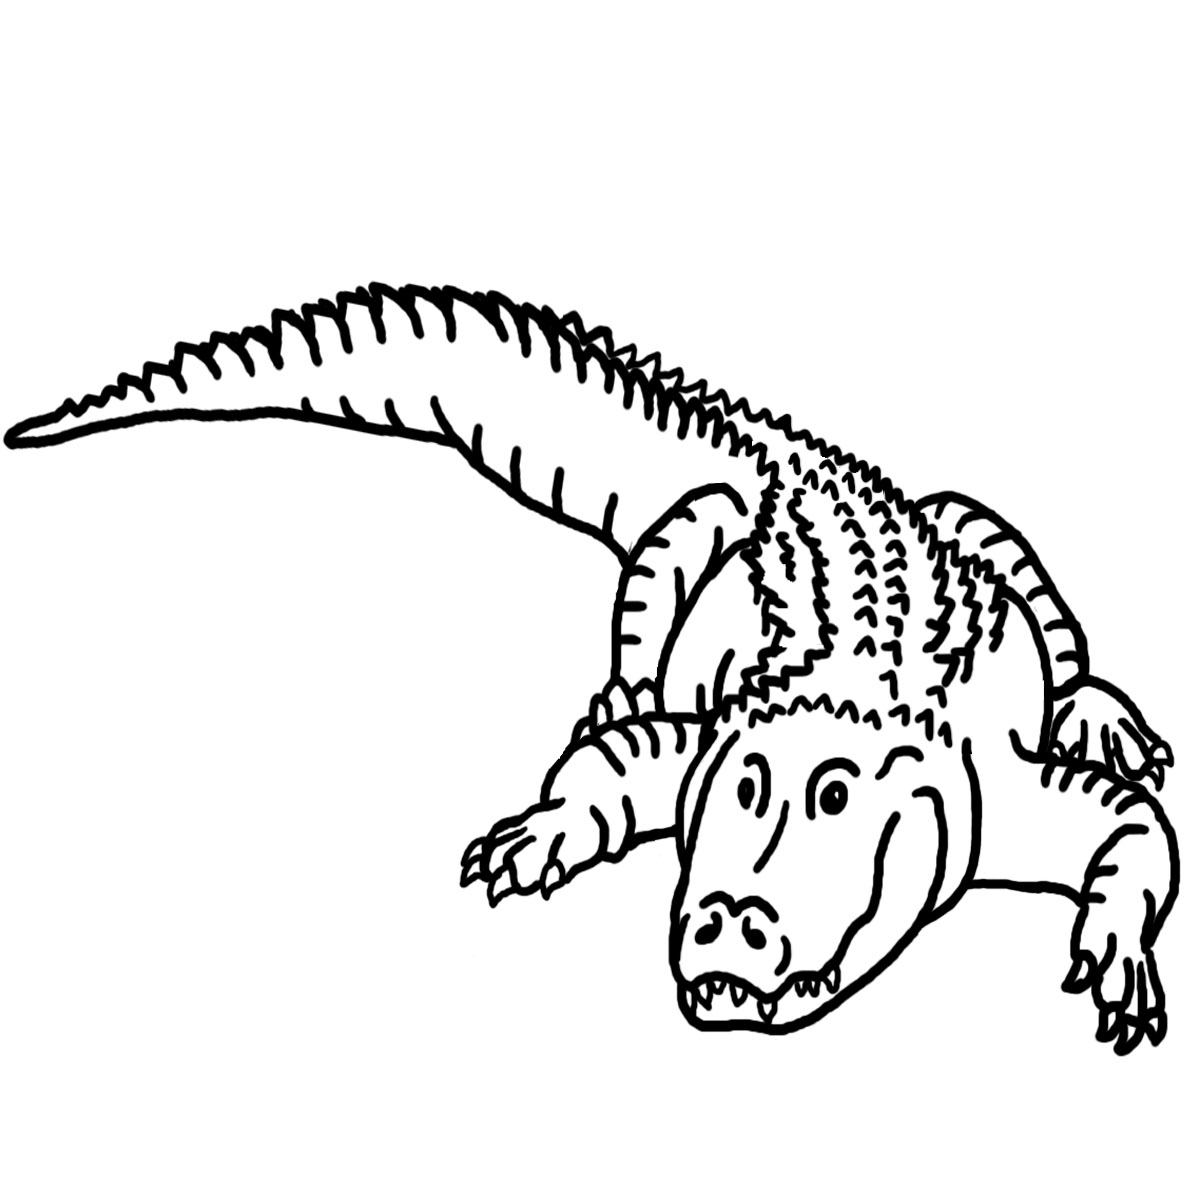 Free Alligator Black And White Clipart, Download Free Clip.